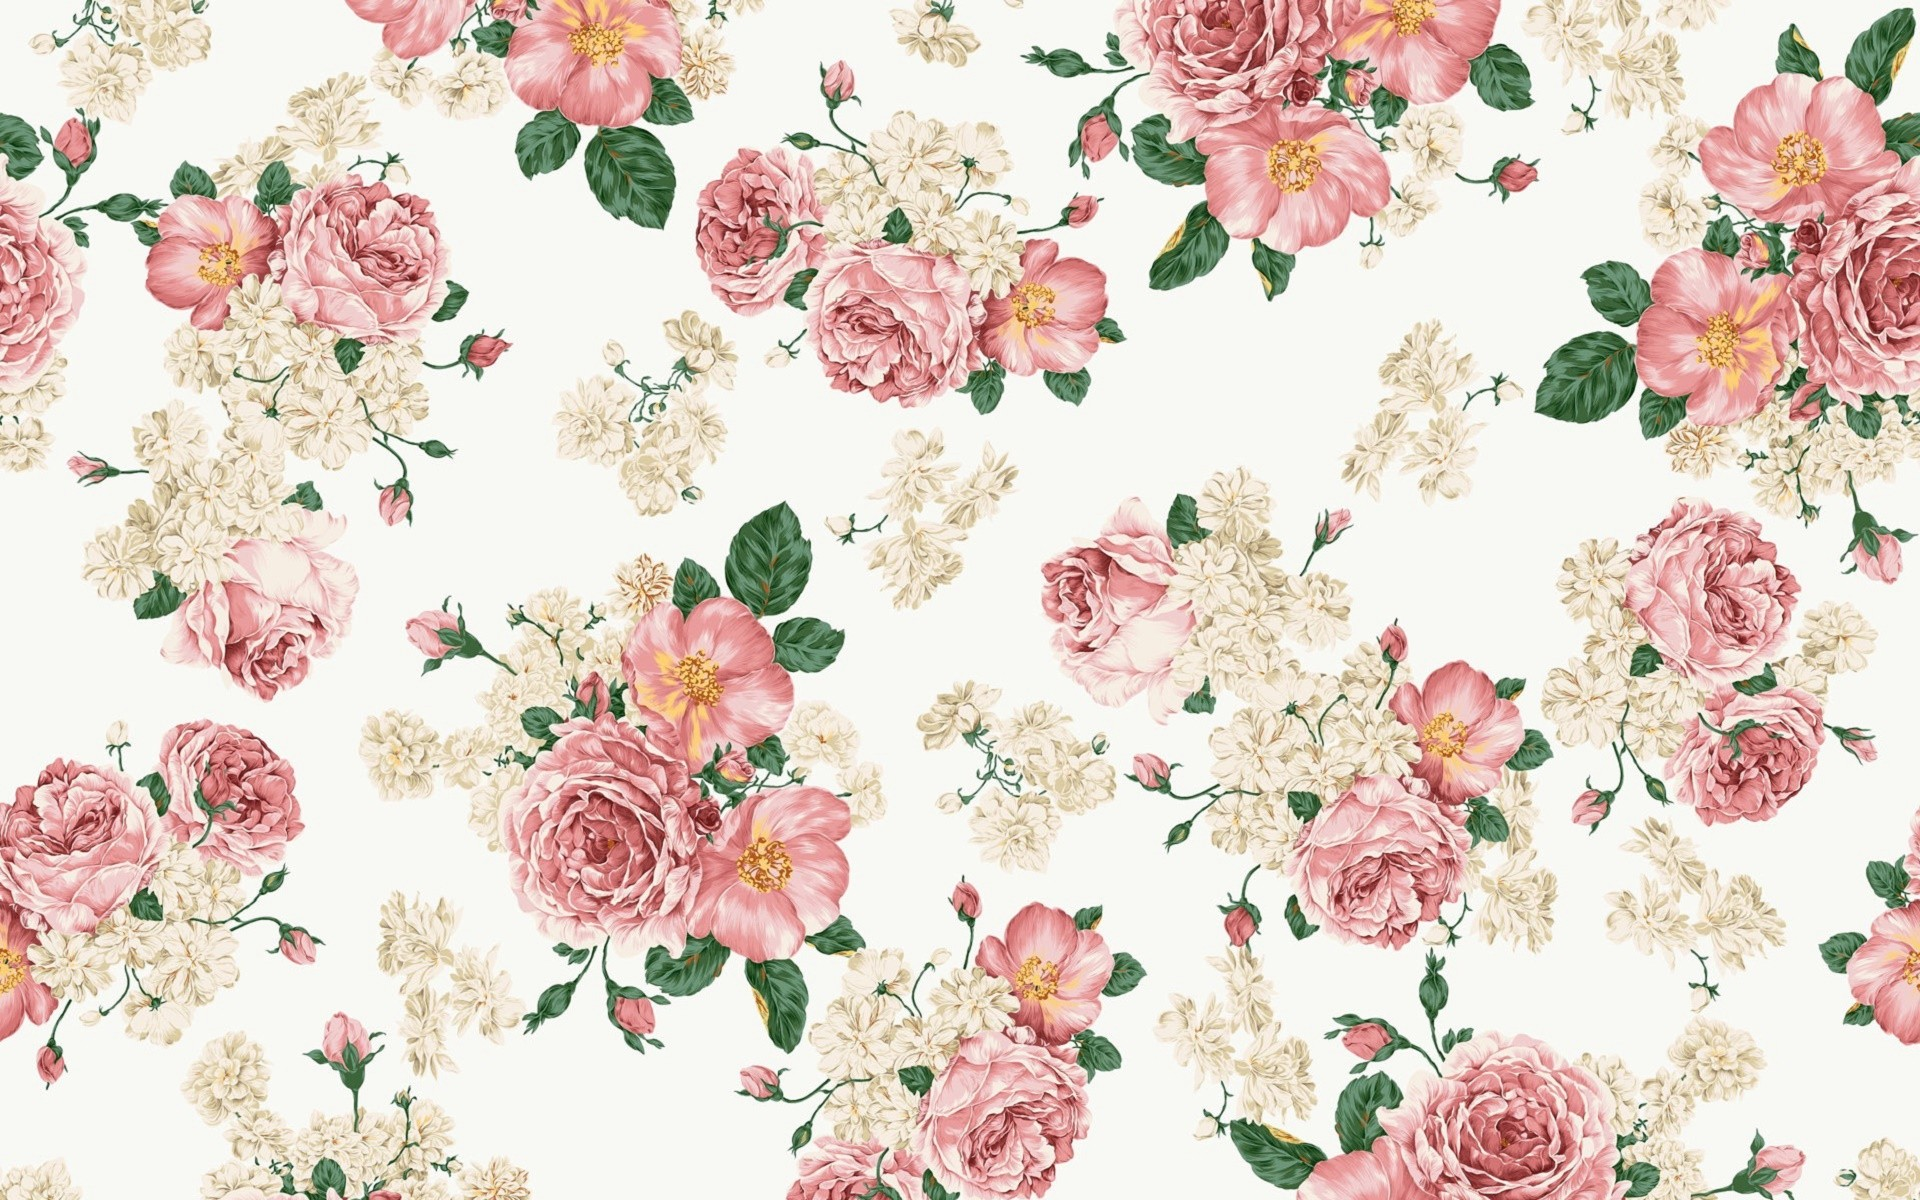 vintage floral wallpaper download free cool high